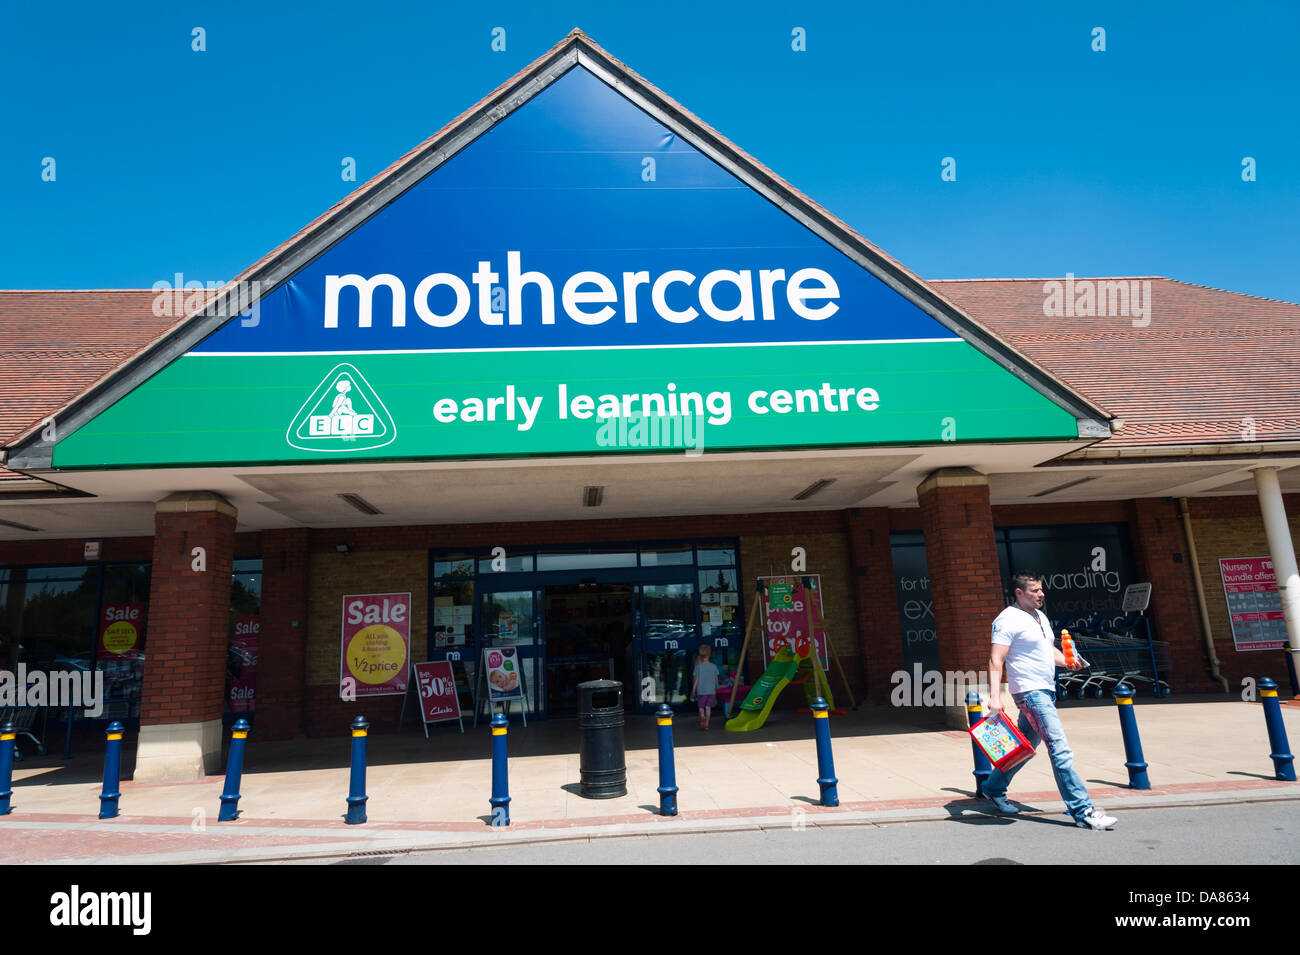 Mothercare store in Taunton, UK. - Stock Image